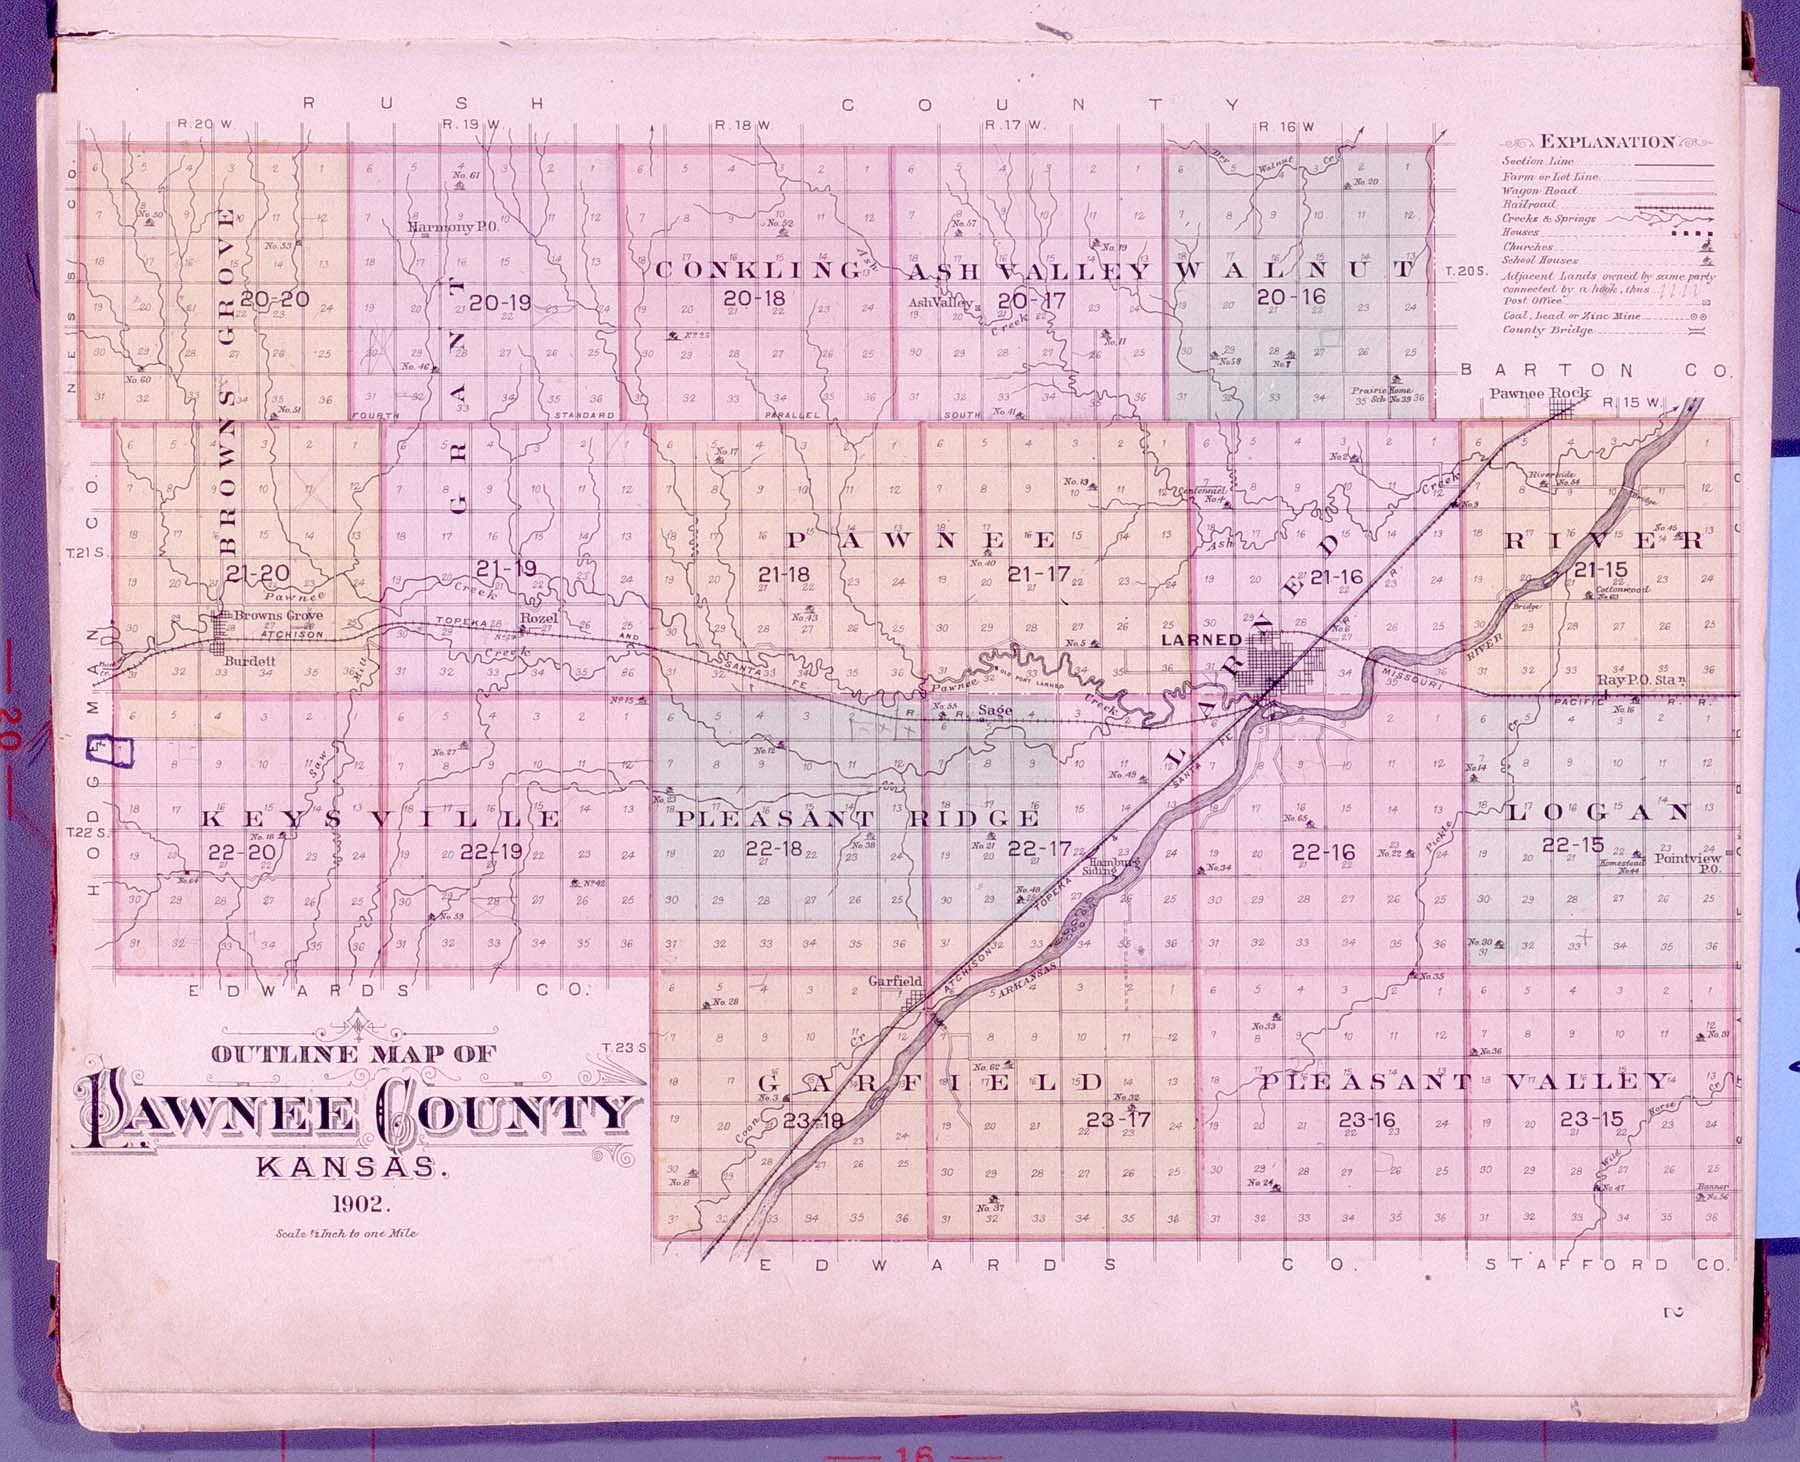 Plat book of Pawnee County, Kansas - 2